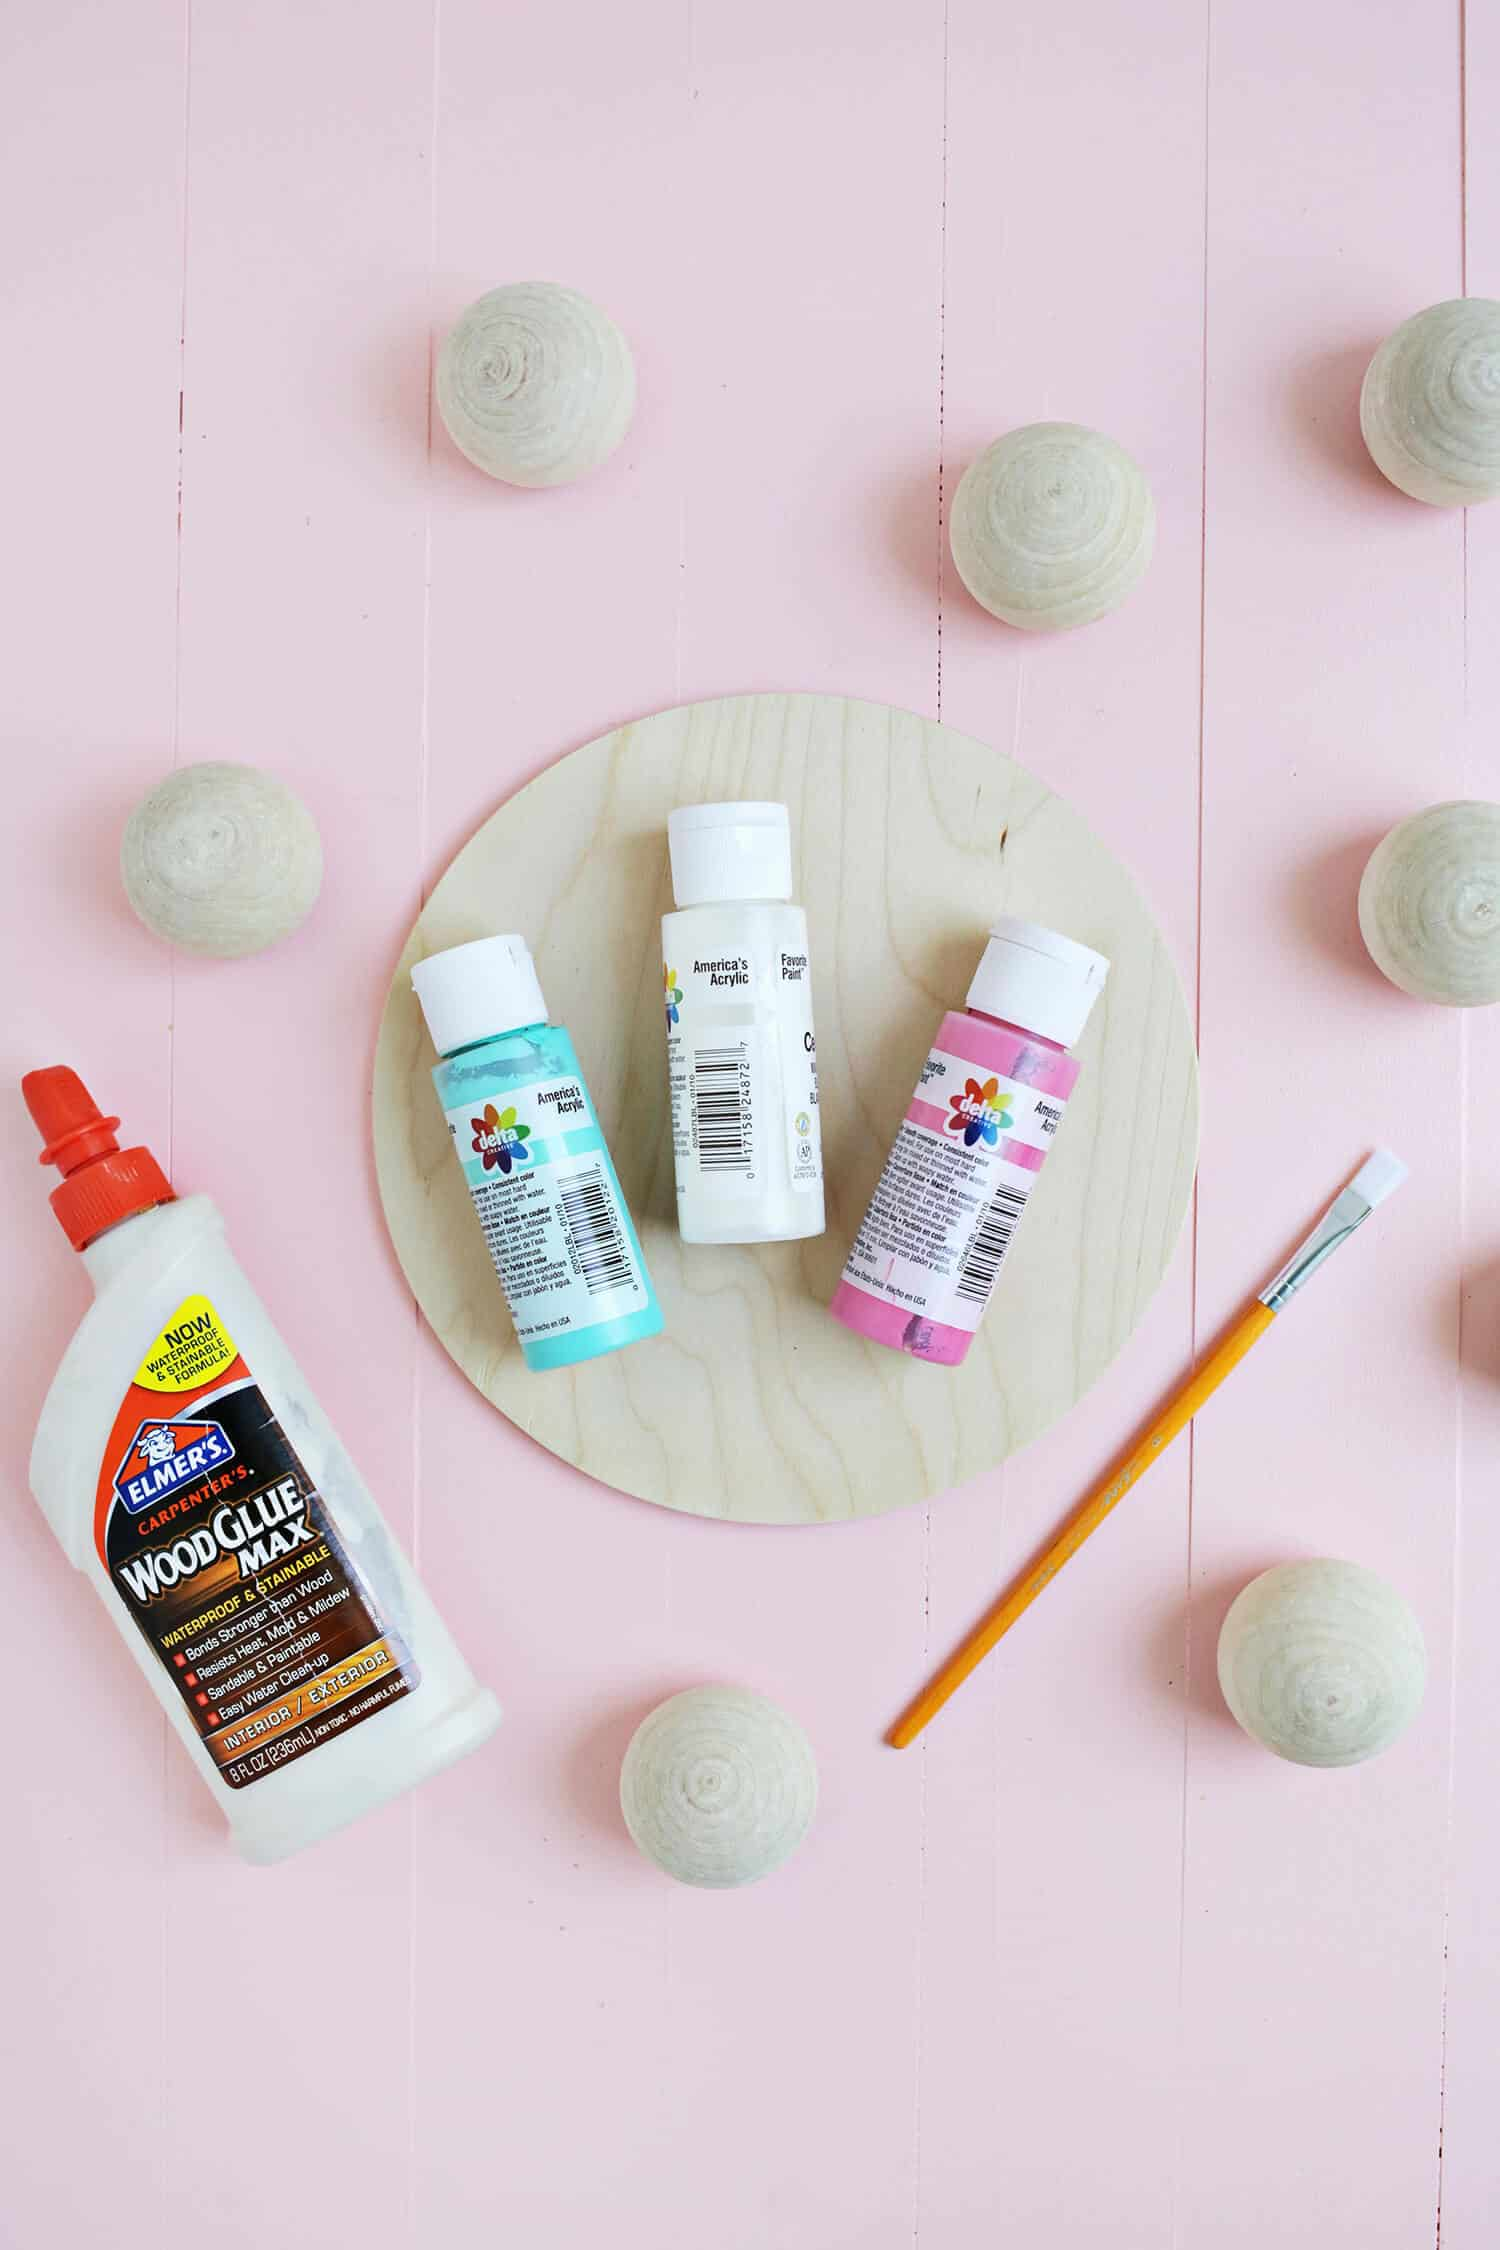 Now separate paint in the colors you prefer, Styrofoam balls, brush and white glue